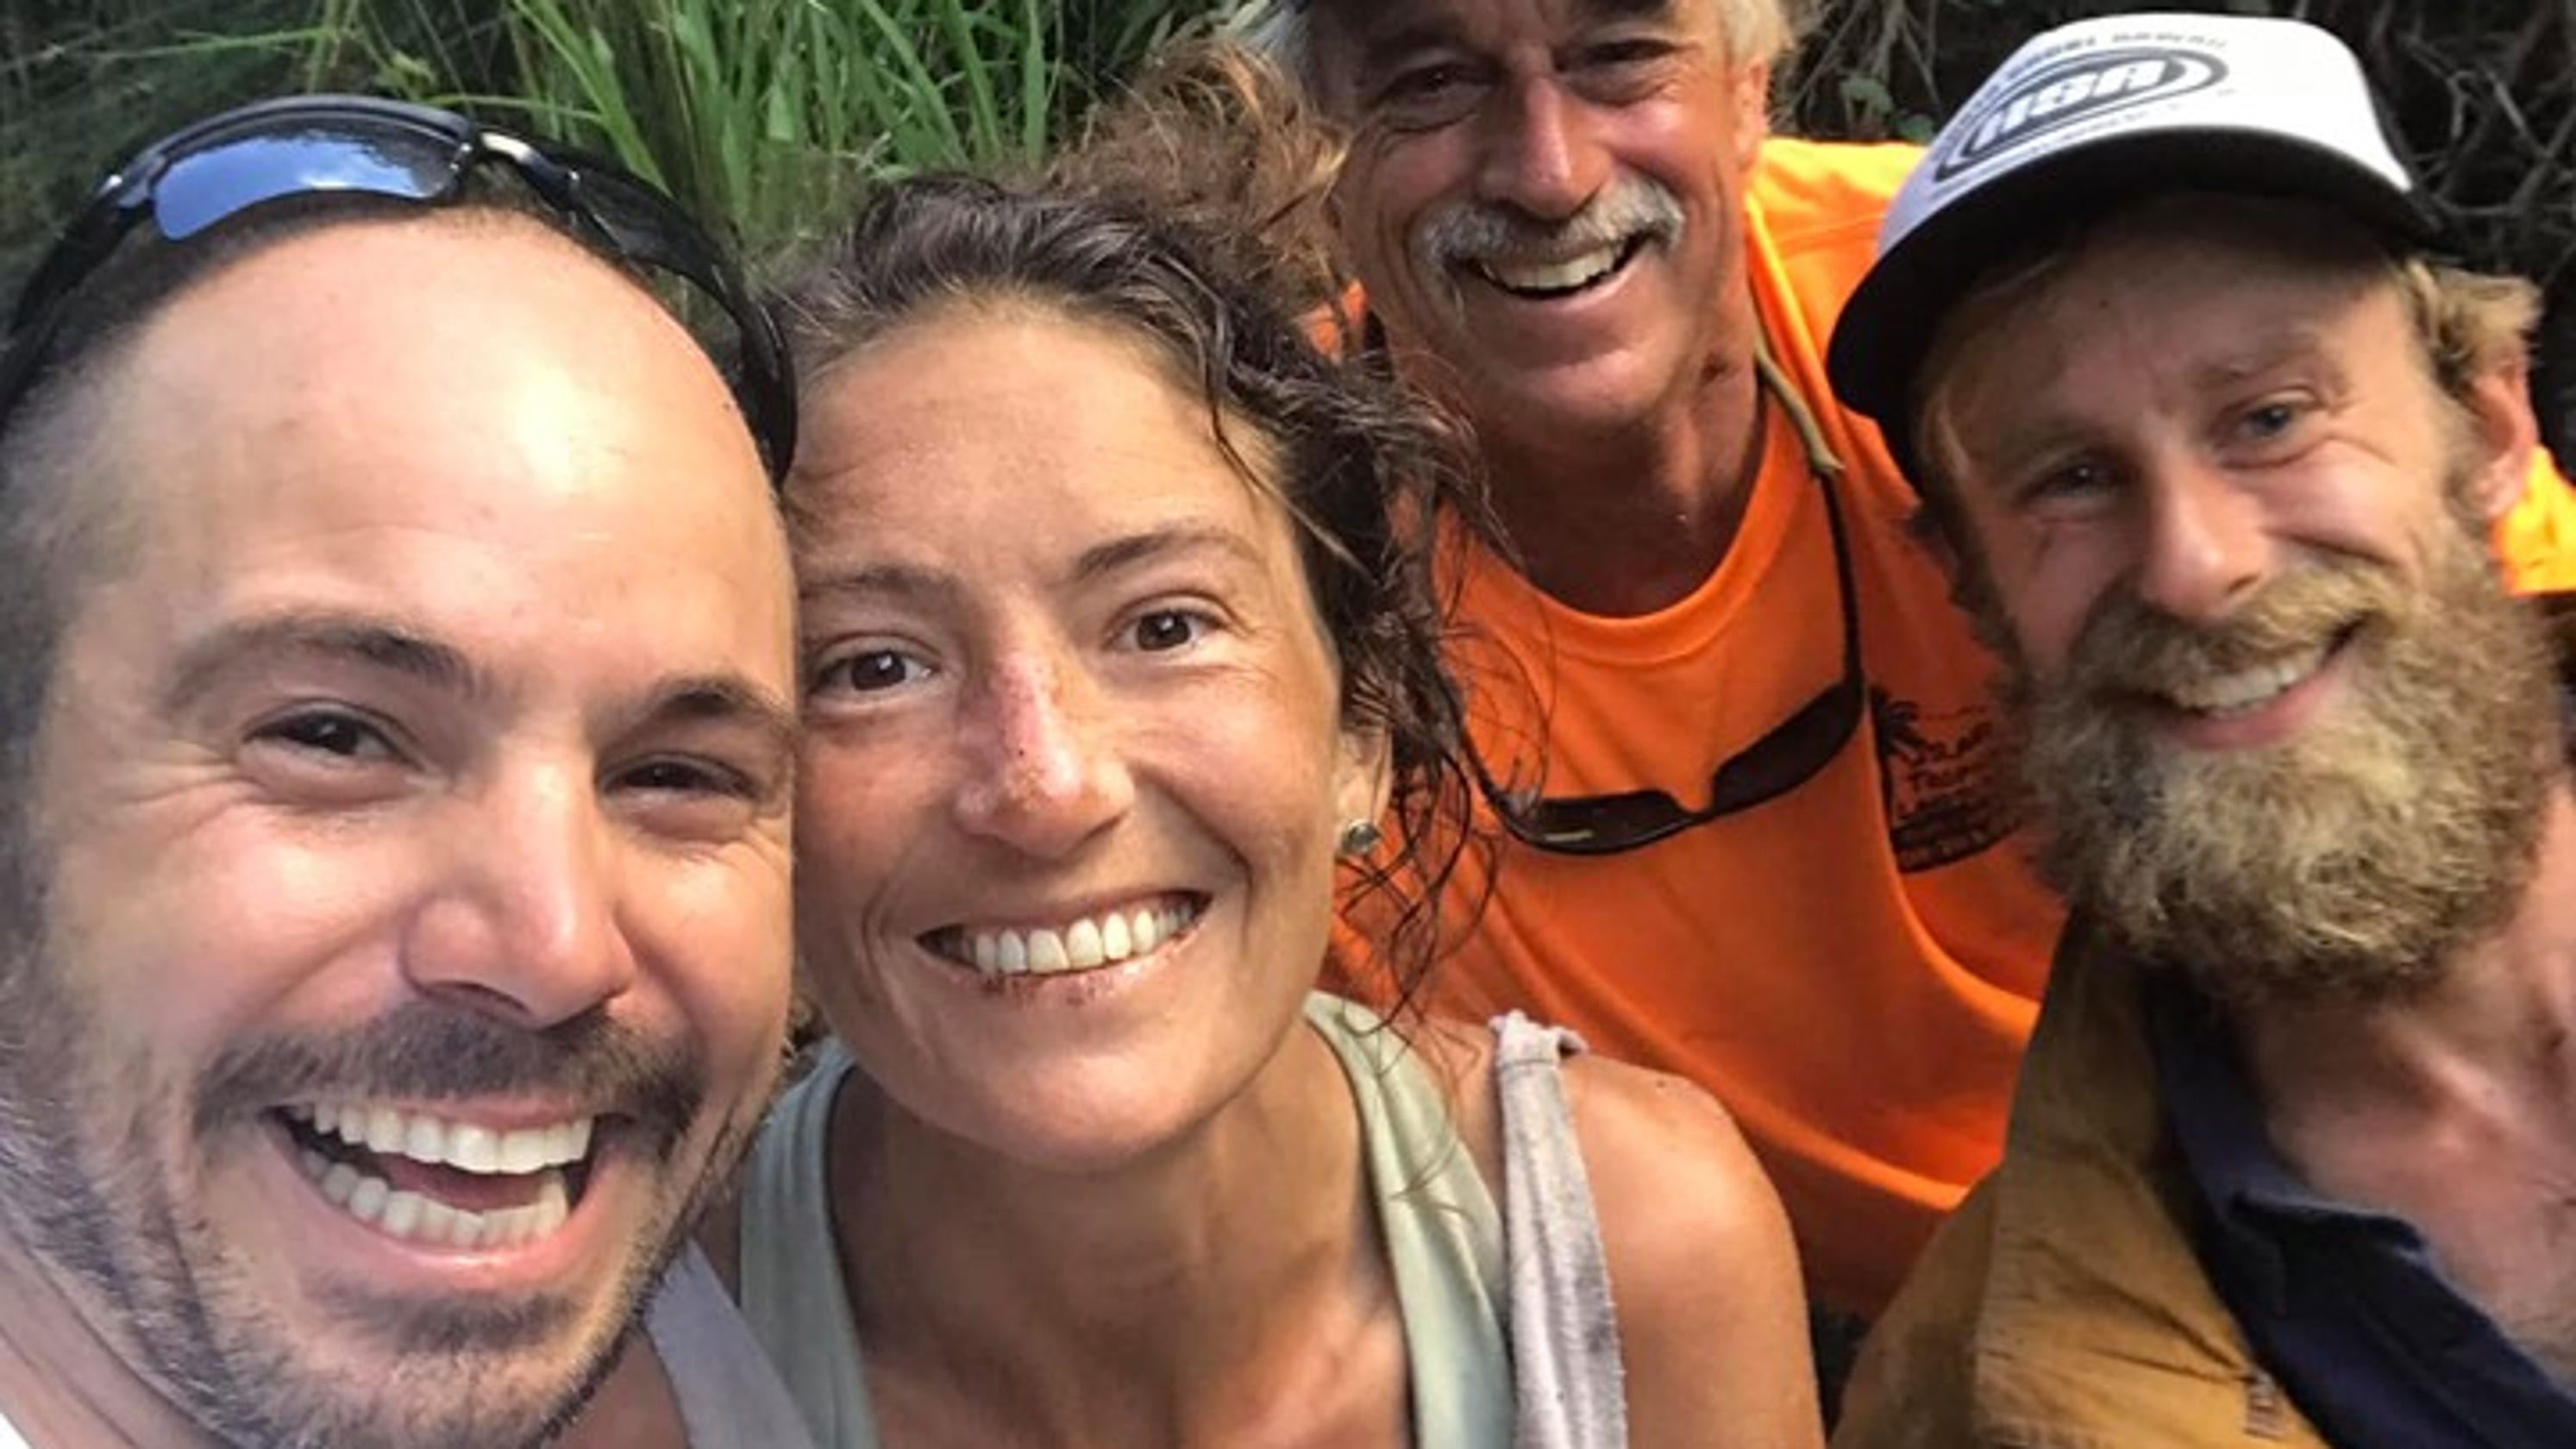 Hiker Amanda Eller found alive after being lost 2 weeks in Maui, Hawaii forest - USA TODAY